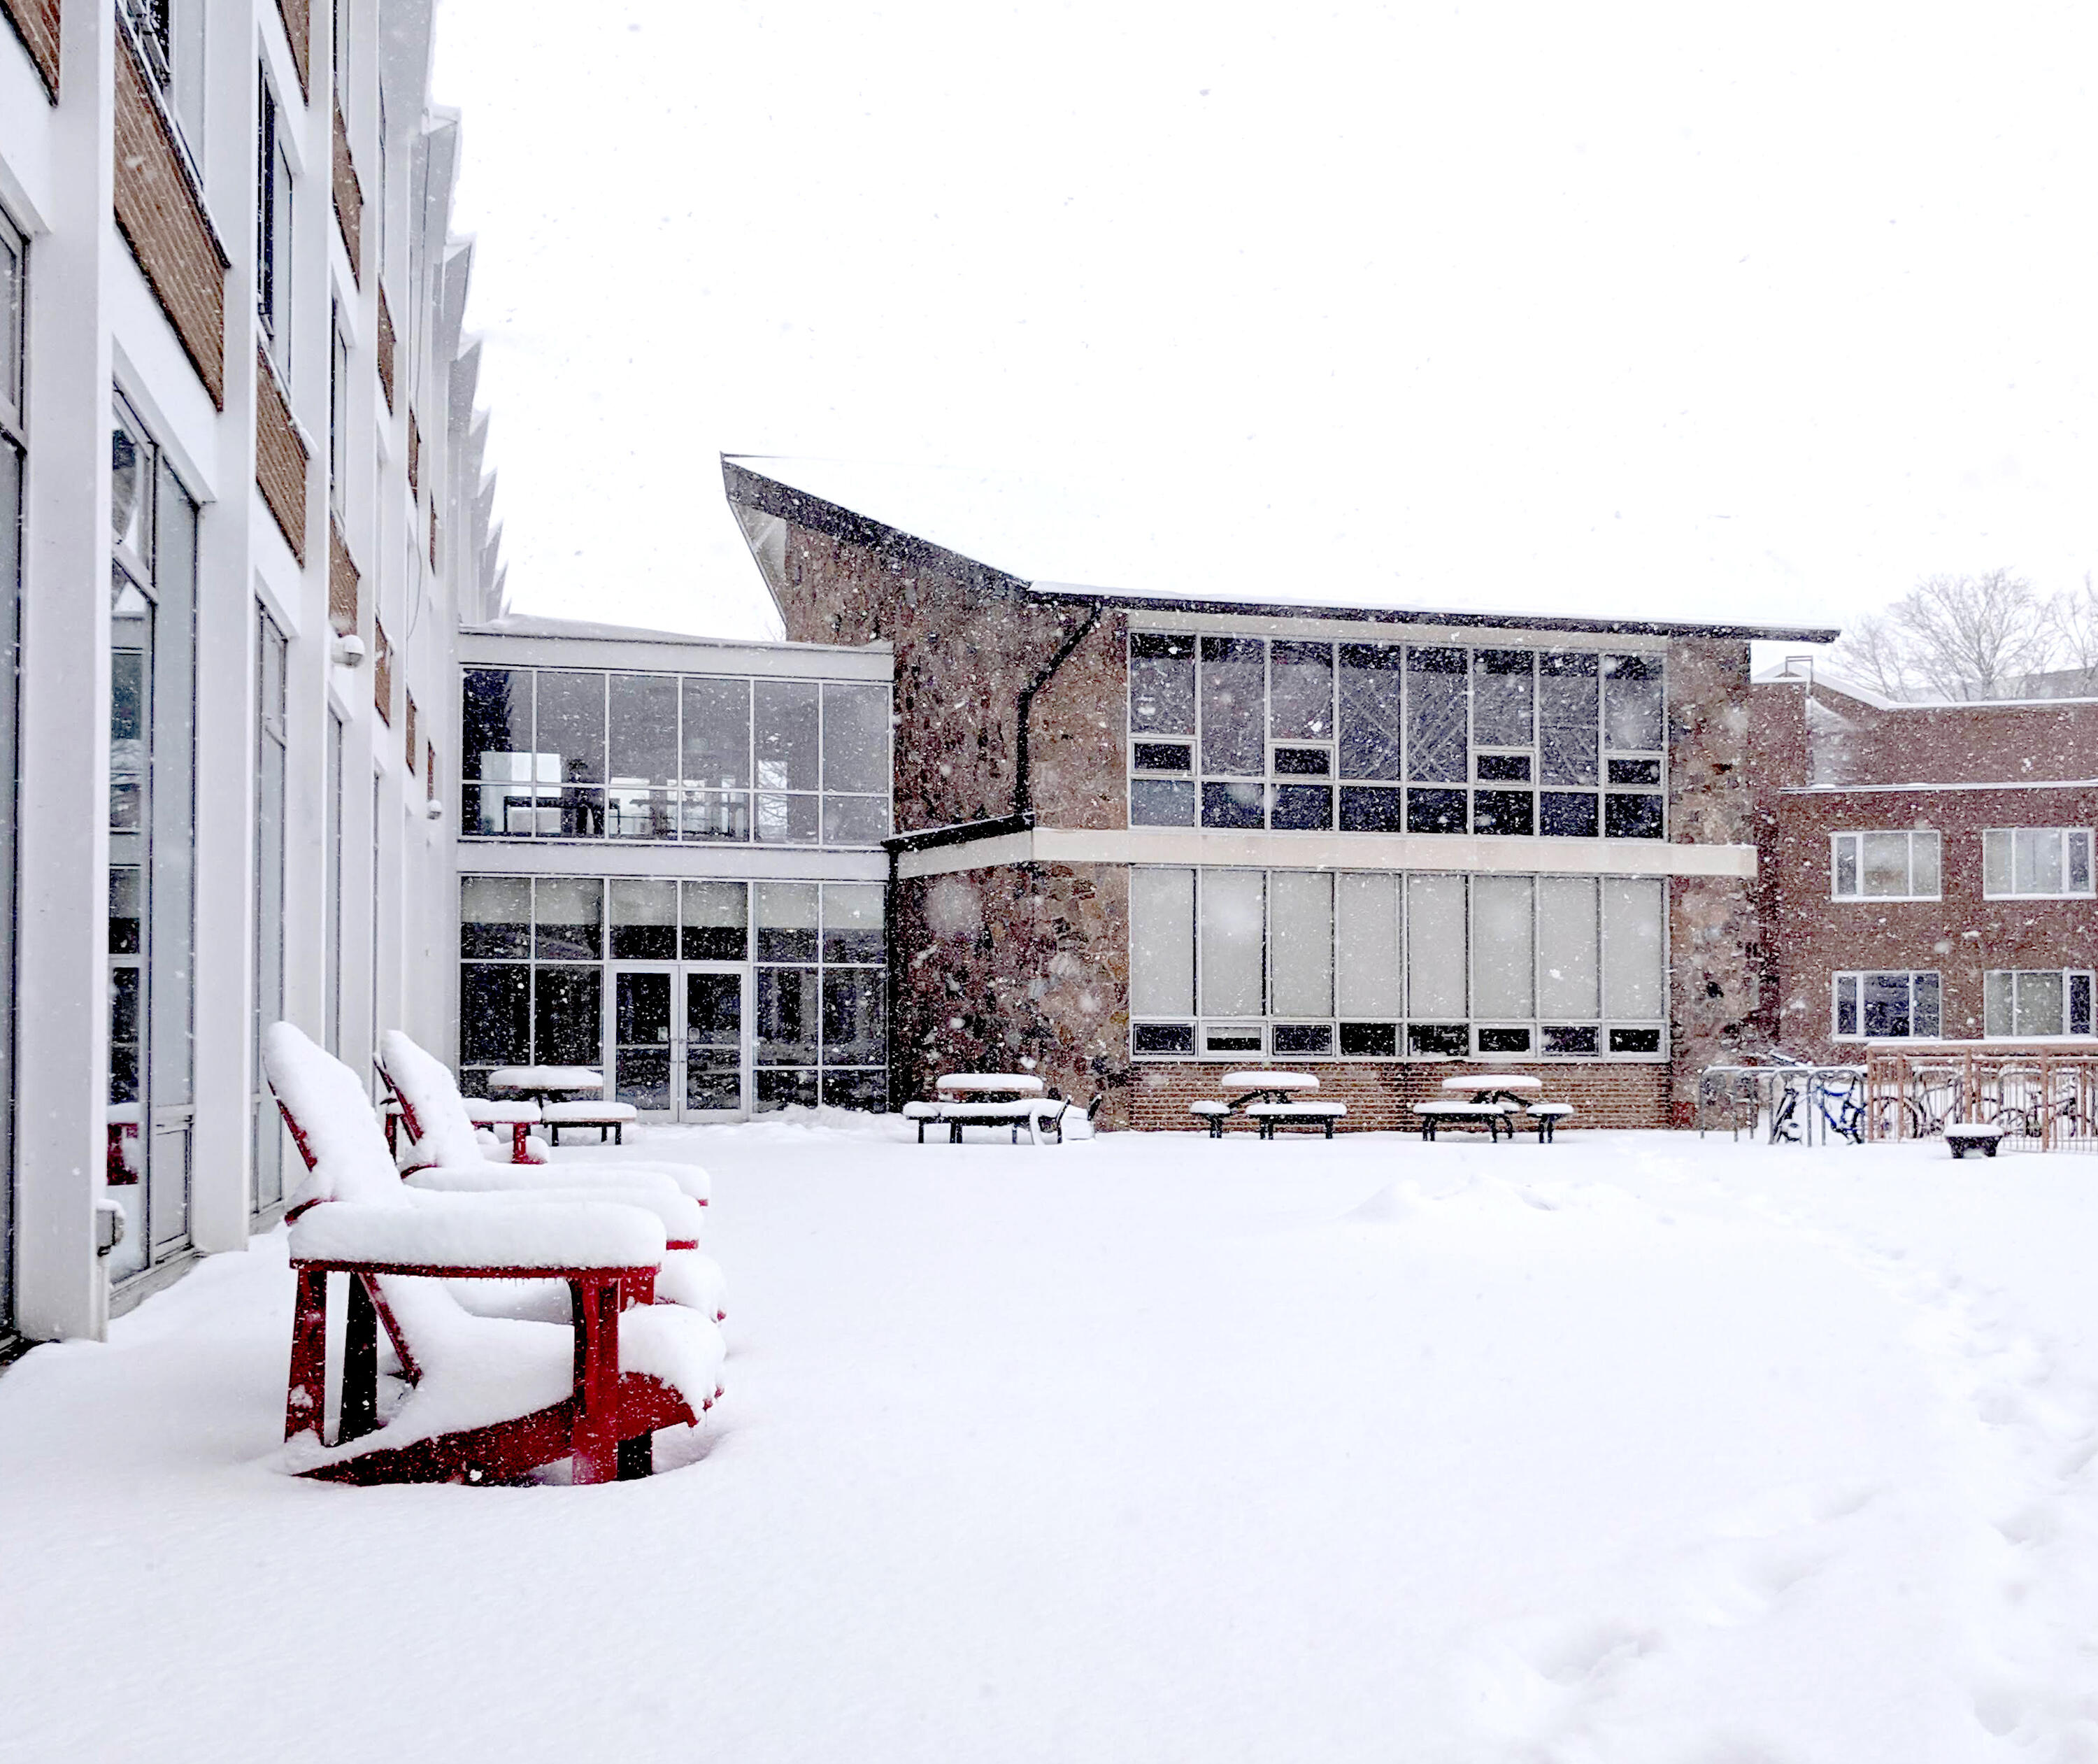 Winter at Grebel